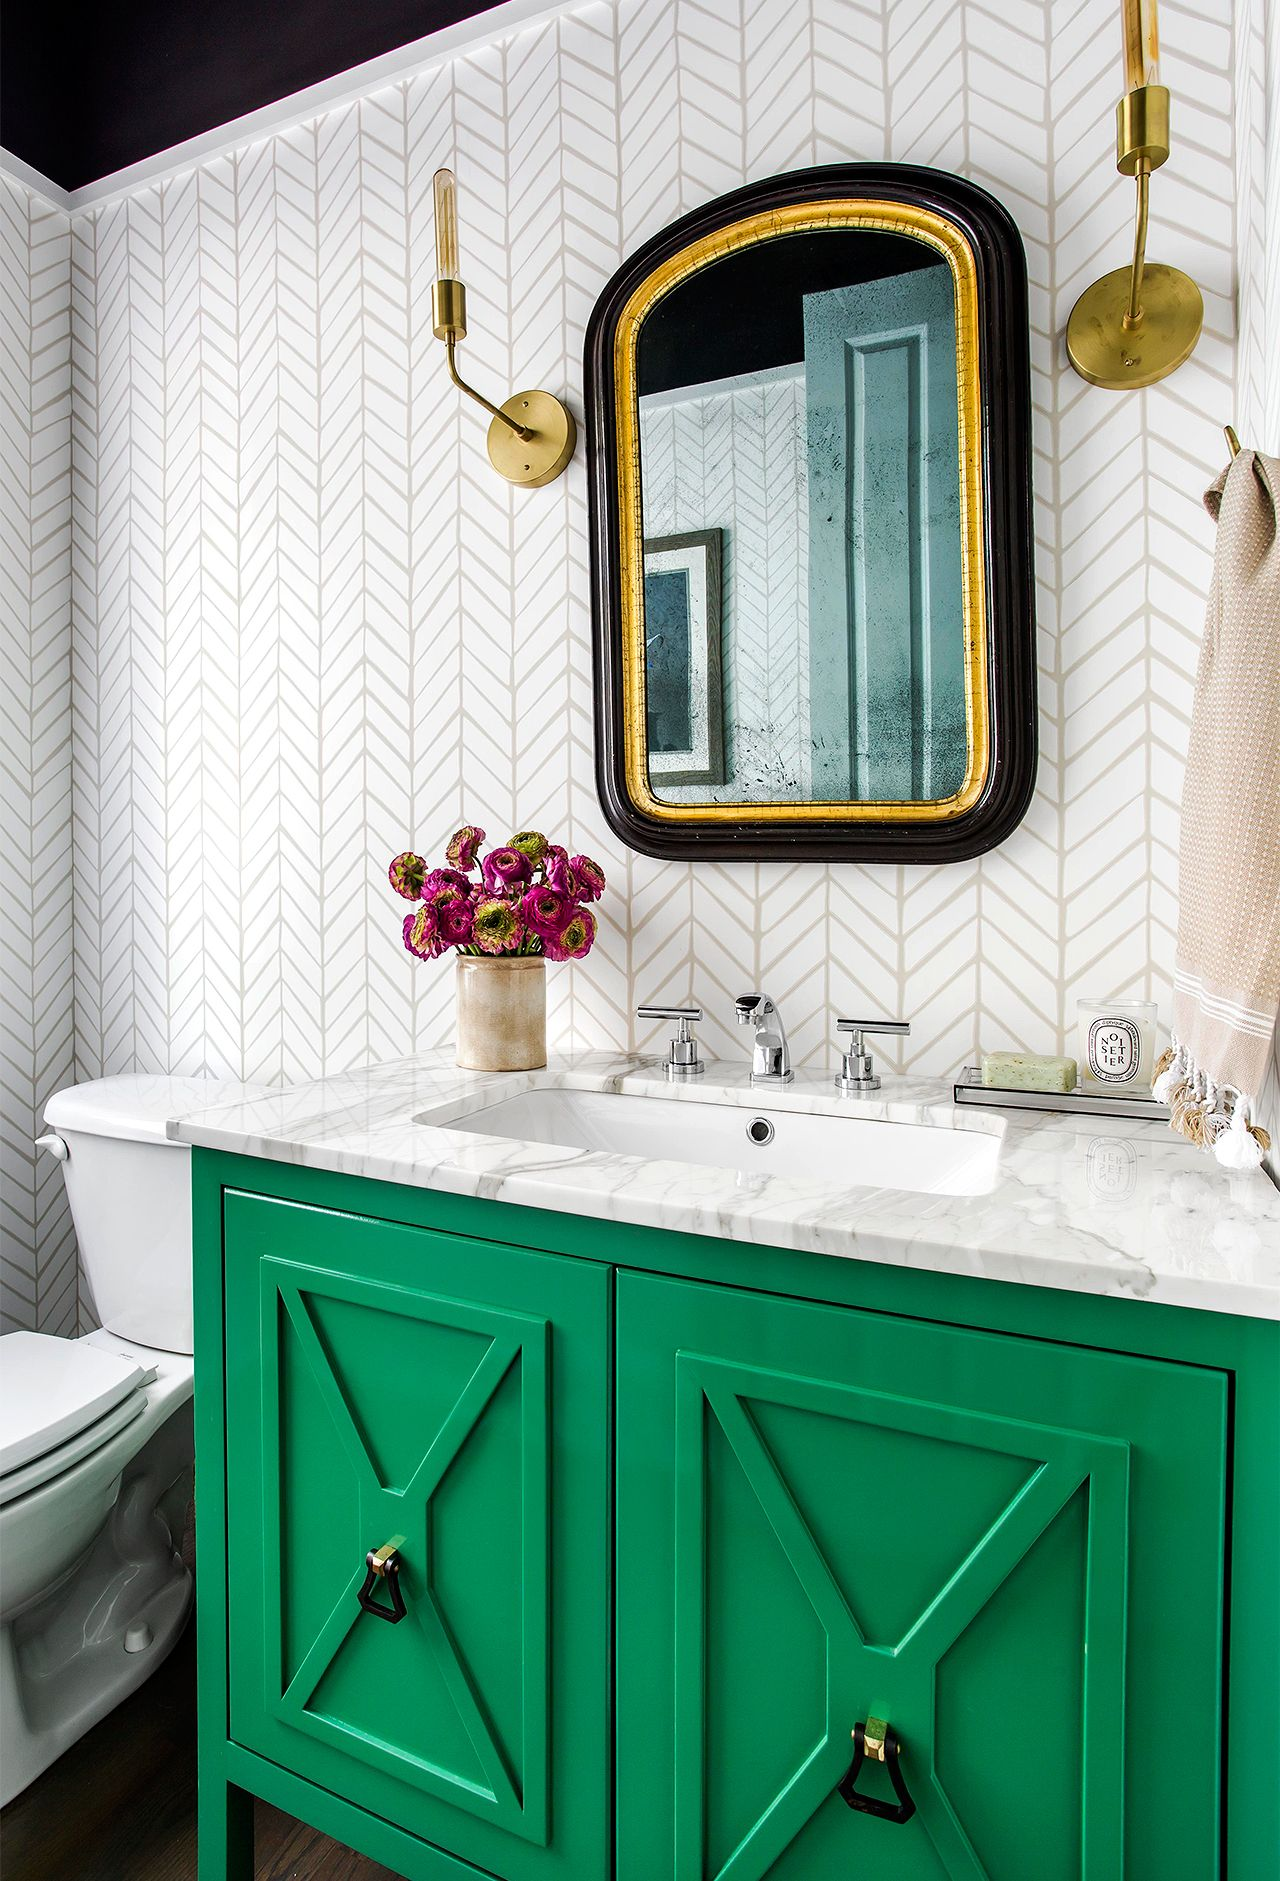 These 8 Bathroom Trends Will Be Everywhere In 2019 Transitional Bathroom Decor Green Vanity Bathroom Design